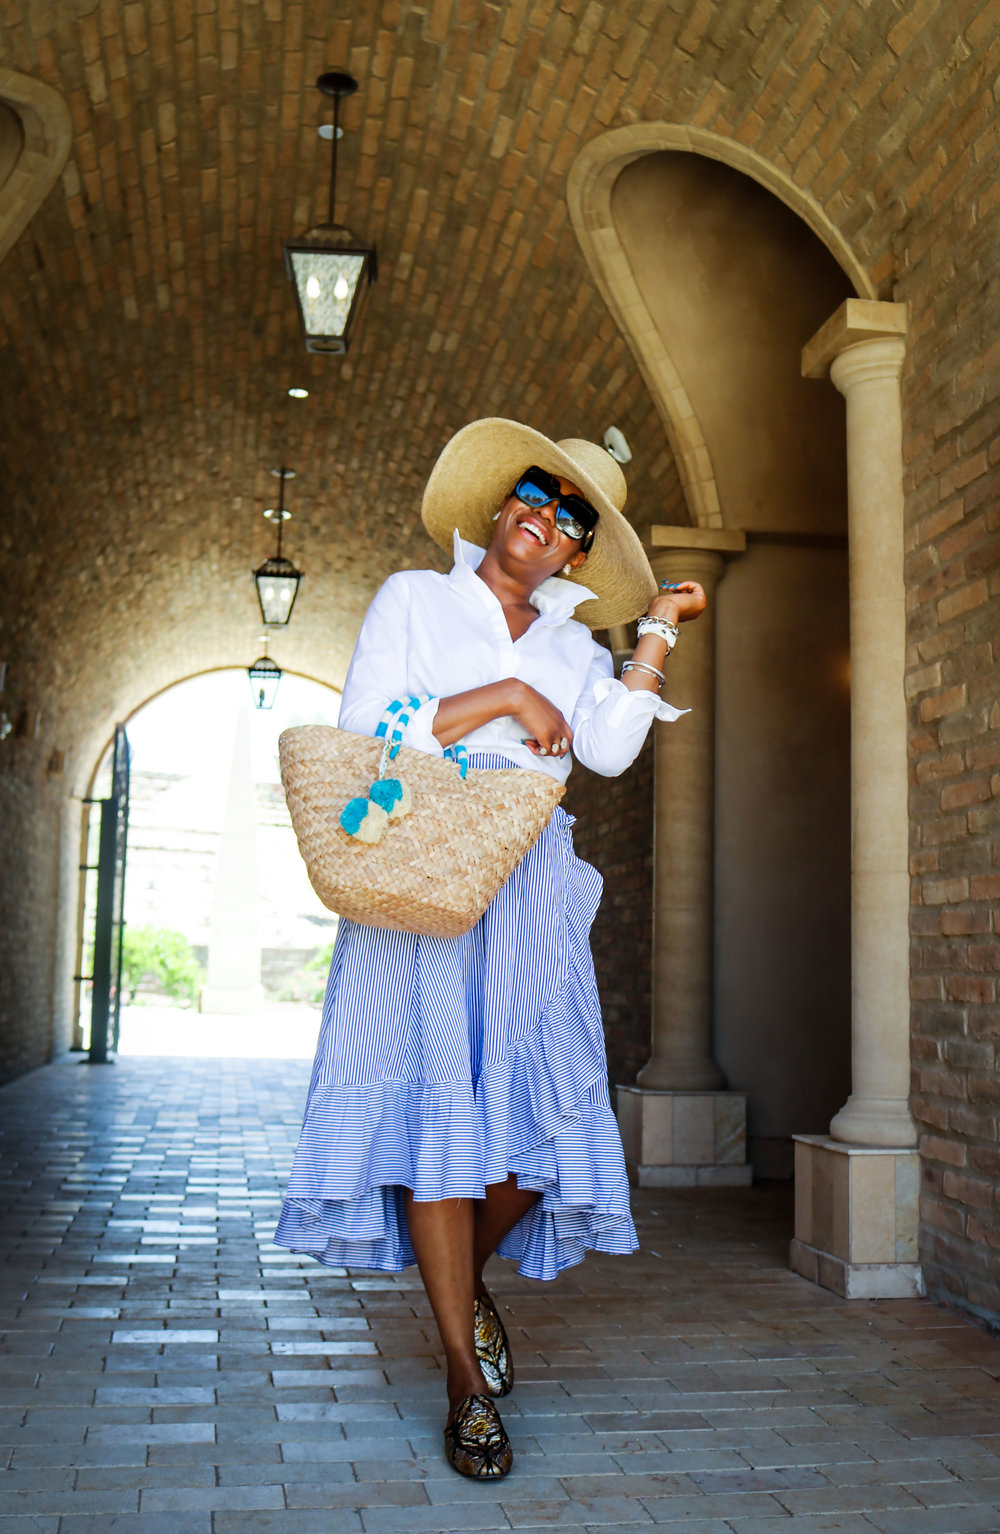 WHAT TO WEAR TO THE ALLEGRETTO RESORT